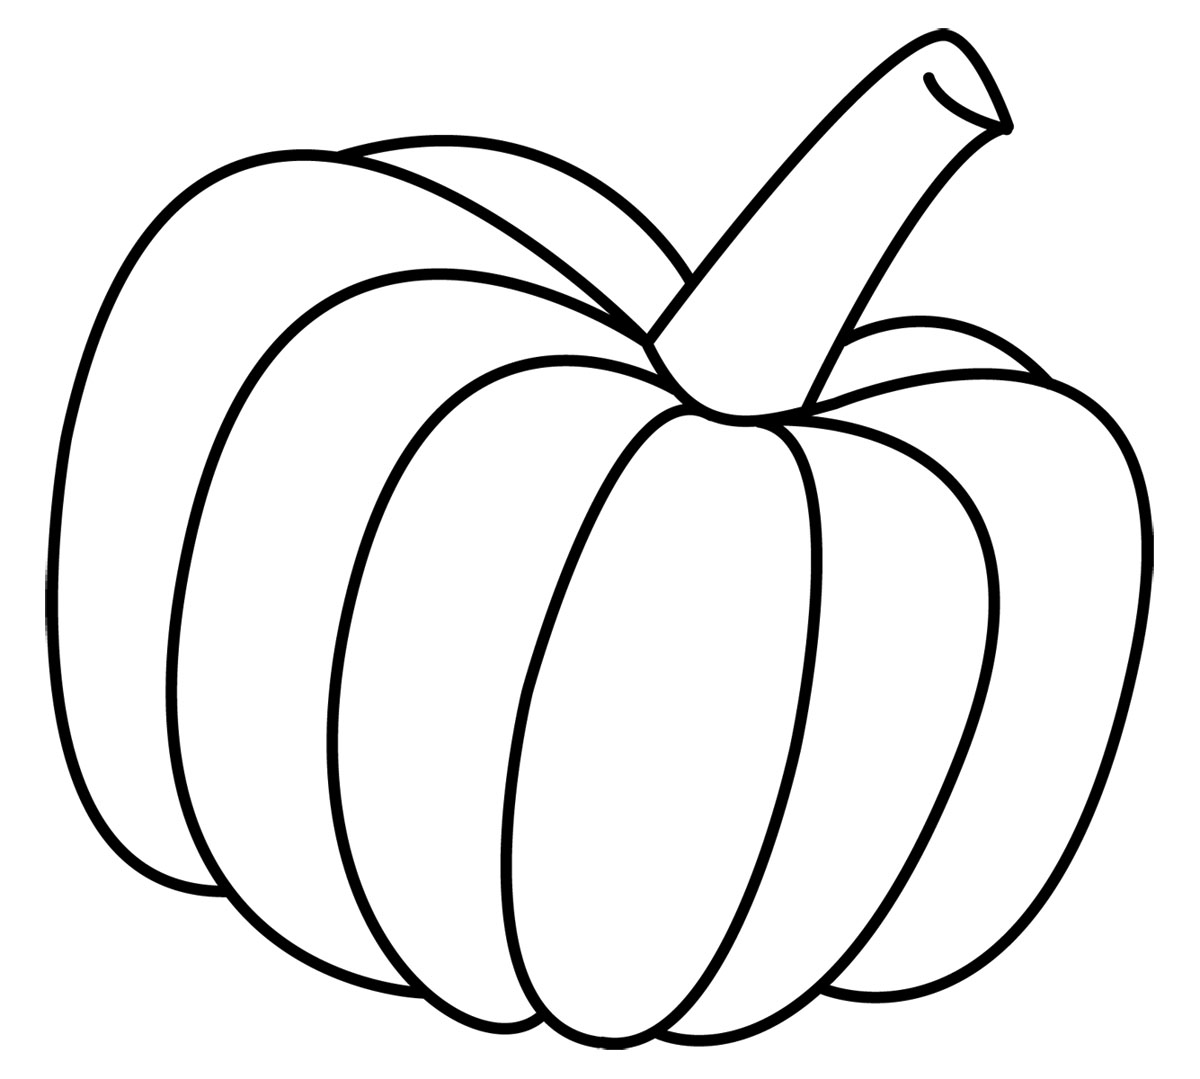 Free Clipart Black And White Borders in addition Owl Coloring Pages furthermore The Fruit Of The Spirit Coloring Page as well Paul Preaching as well Spider Man Math Worksheets For Kindergarten. on turkey coloring pages in a field